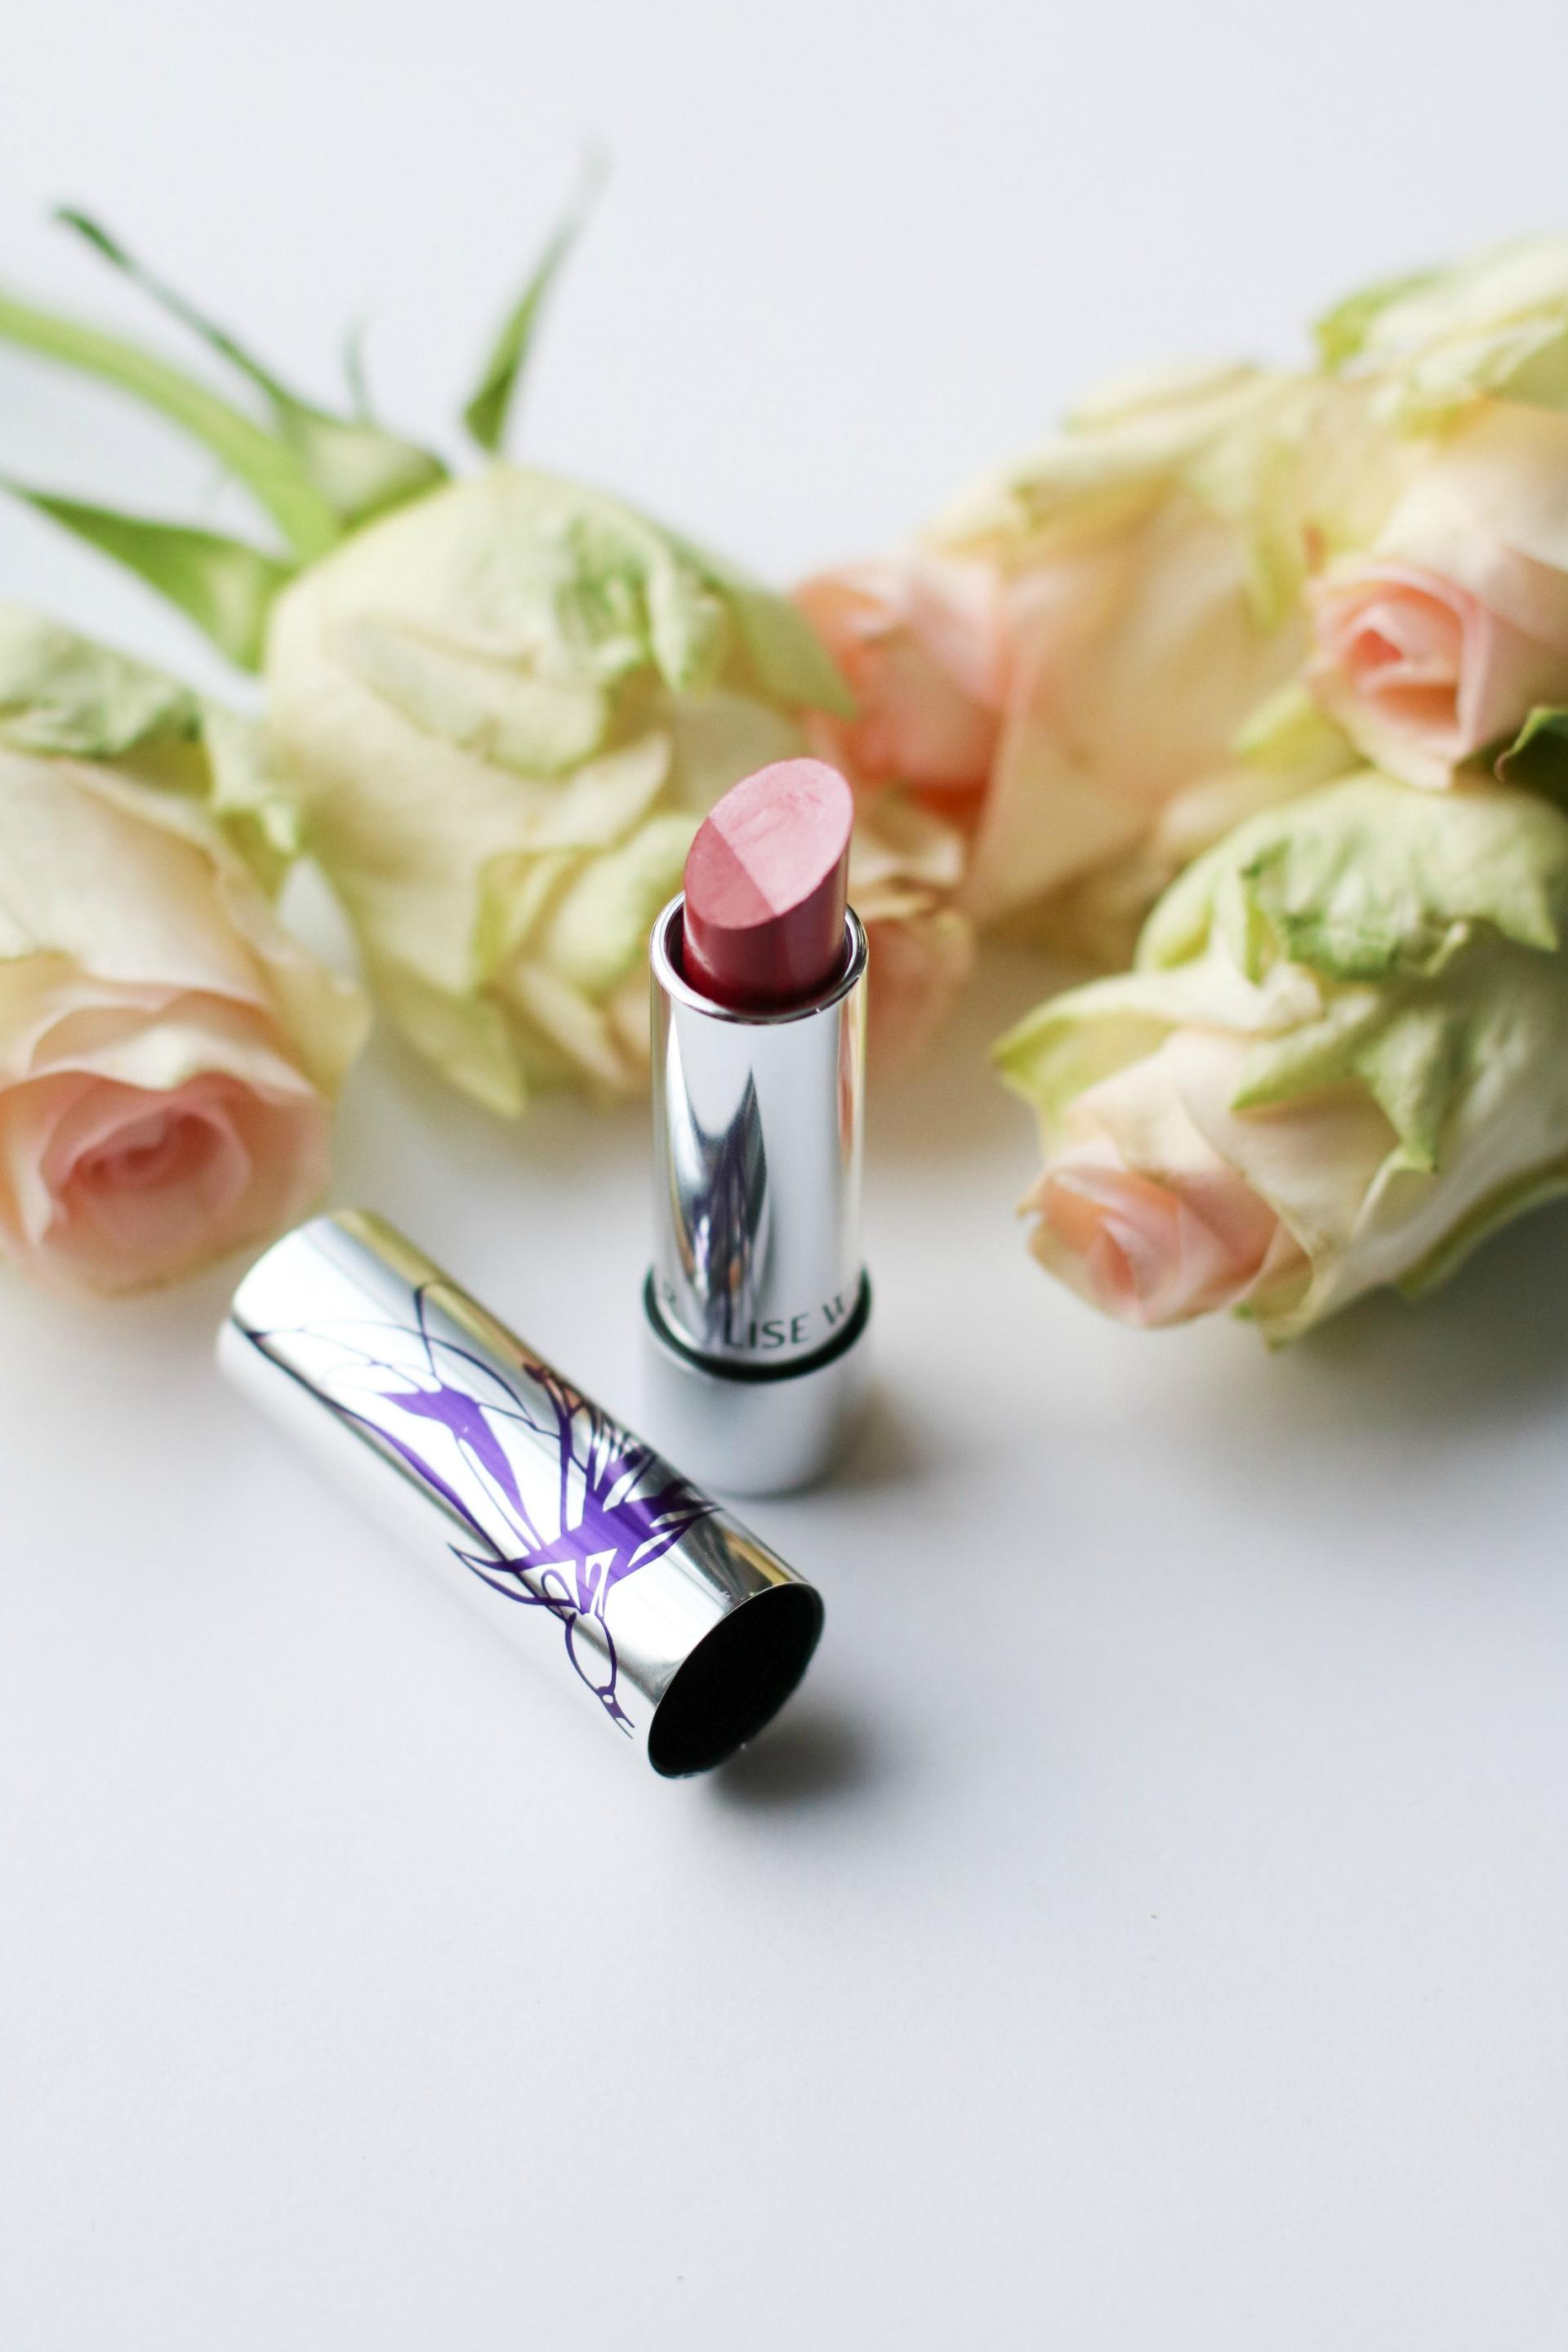 SD Beauty Review: Lise Watier's Spring 2017 Collections - Rouge Intense Suprême and Blossom Beauty